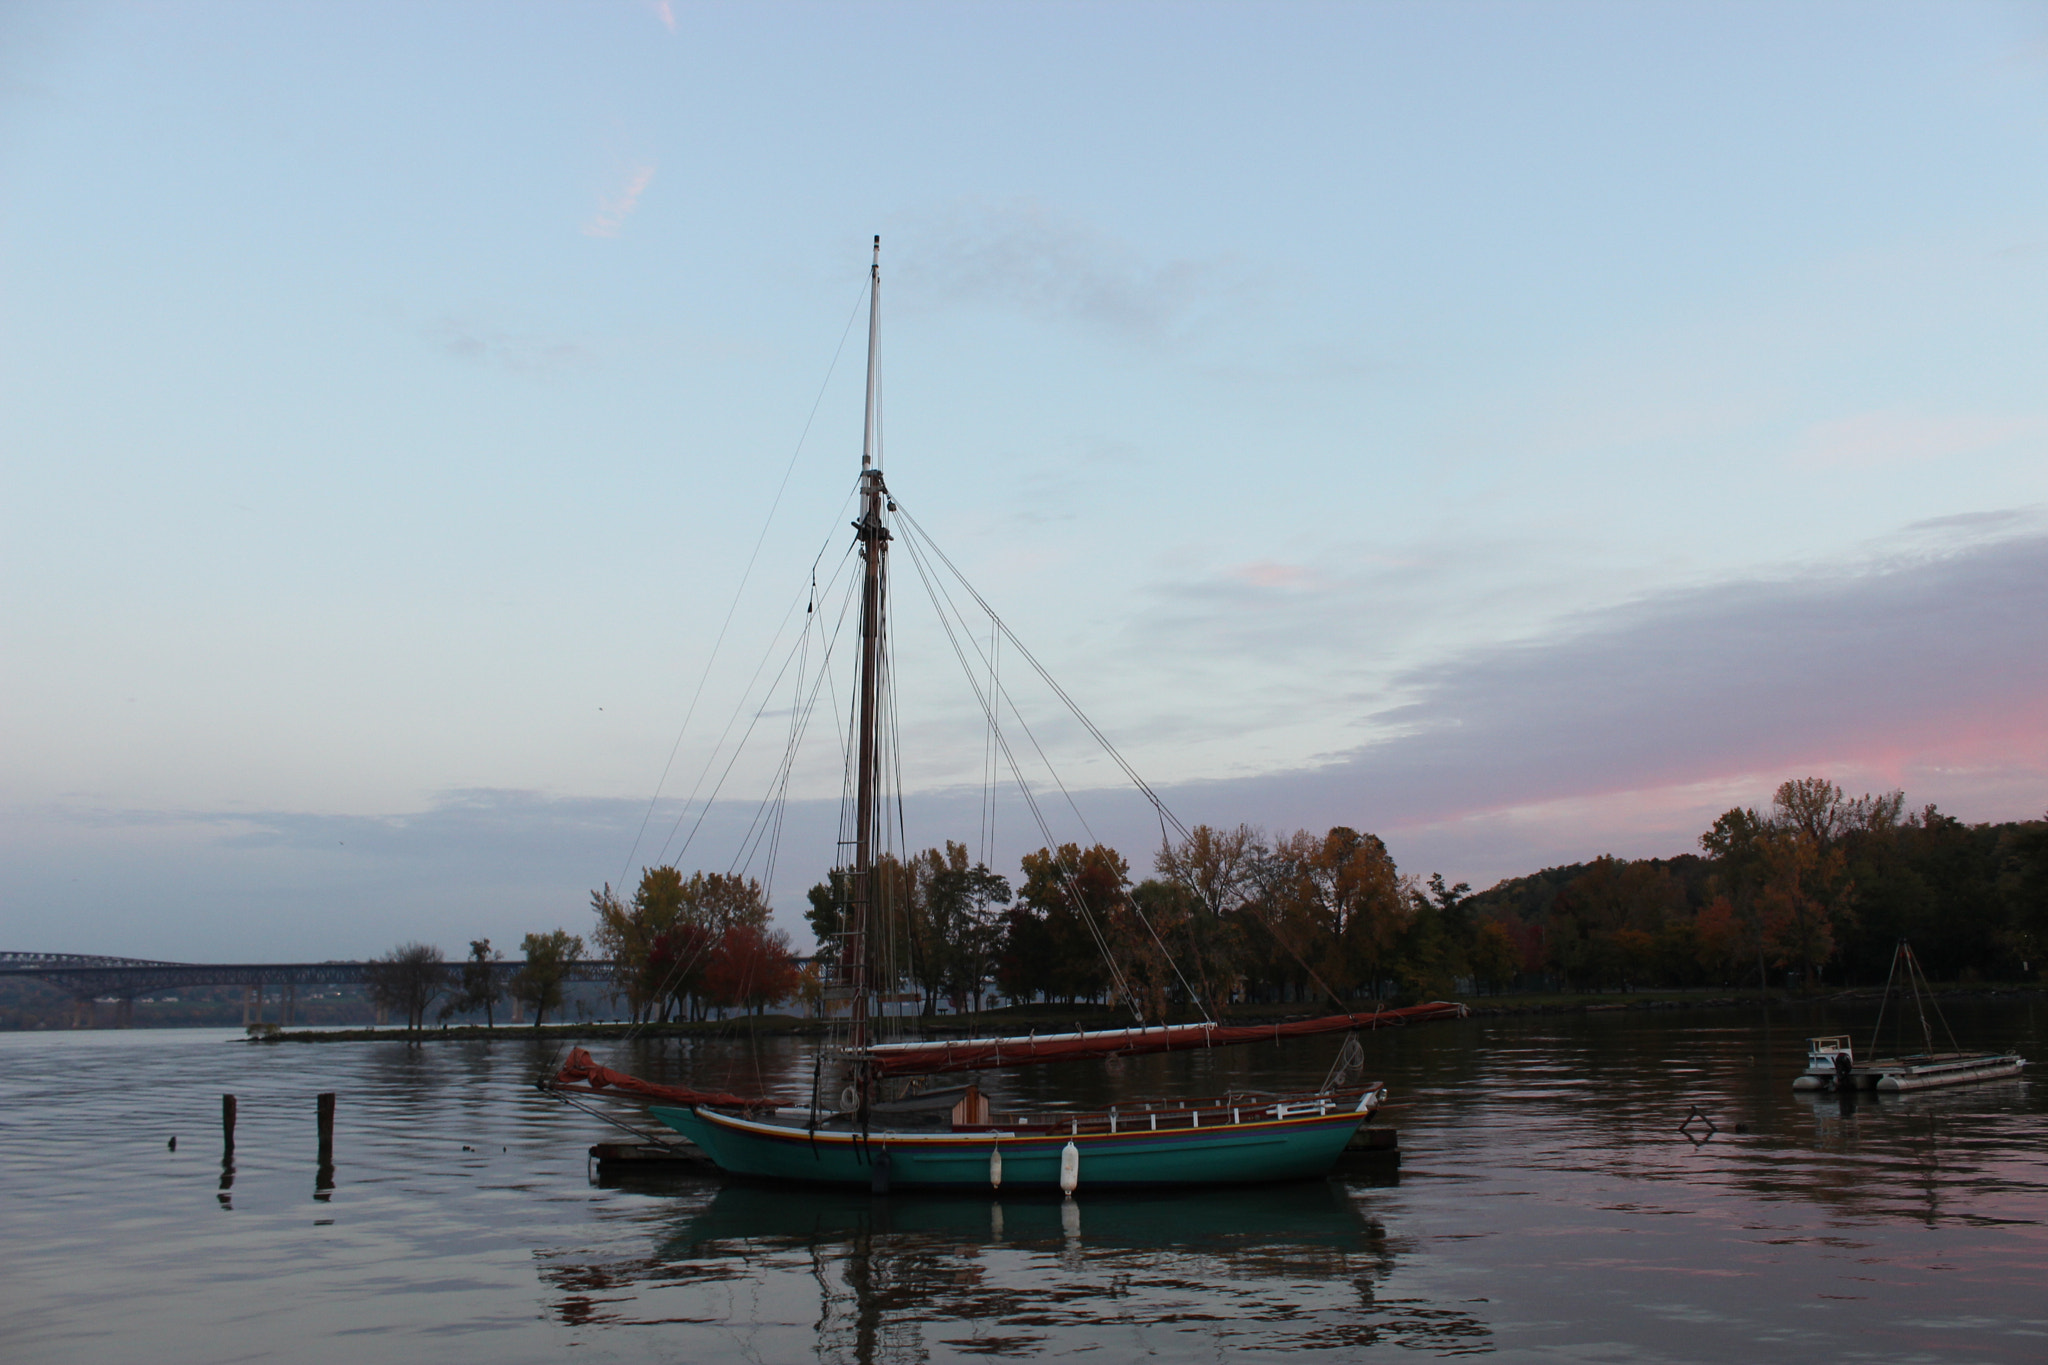 Photograph Sailboat at Sunrise (unedited) by Christine Skulevold on 500px